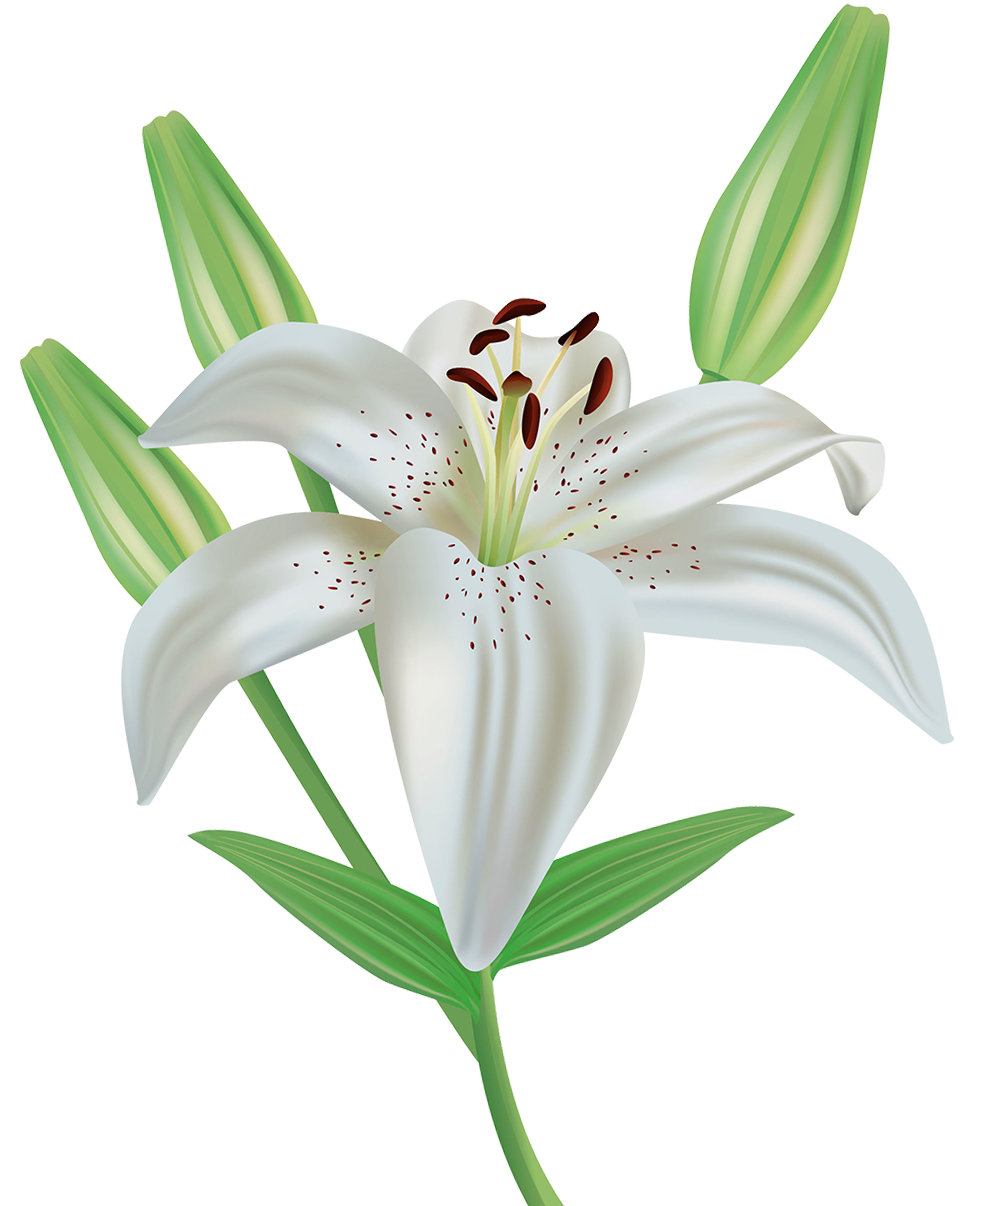 Lilies Images PNG 18553